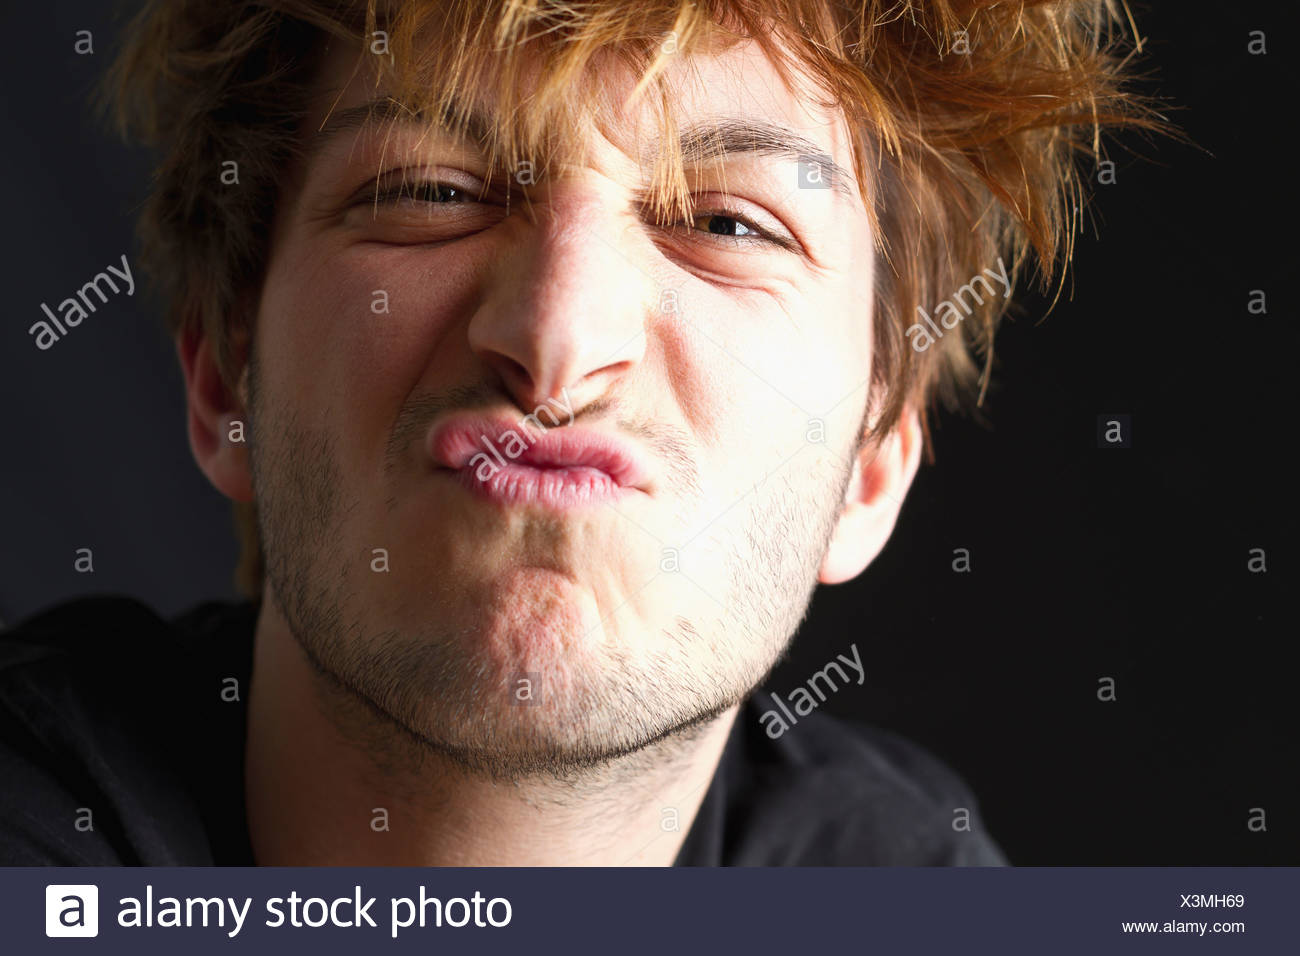 Close up of young man with messy hair against black background, pouting, portrait - Stock Image